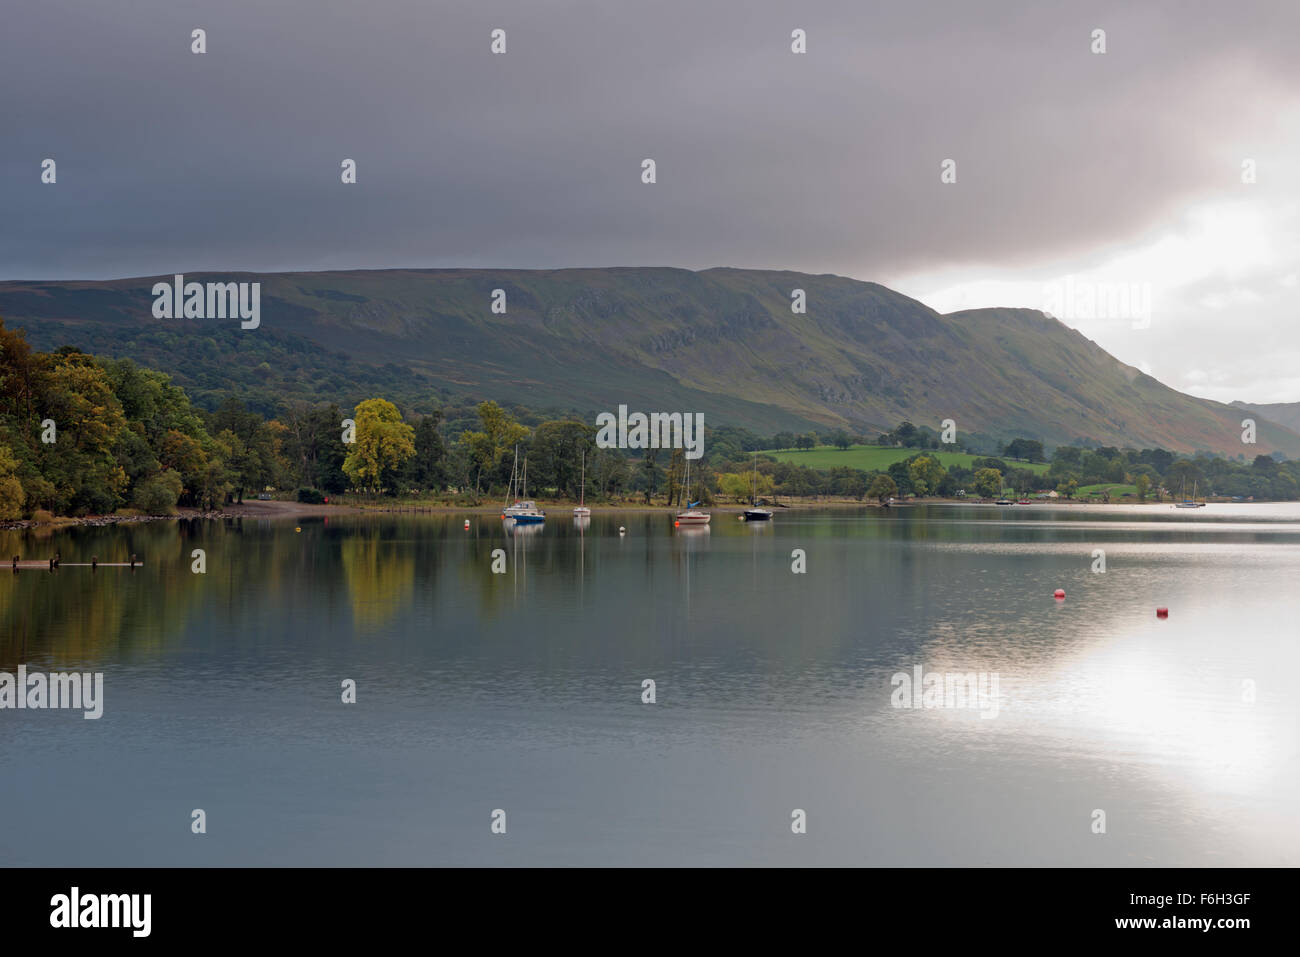 Views from  Pooley Bridge Pier of boats on Ullswater Lake District National Park, Cumbria, England, Uk, Gb. Stock Photo